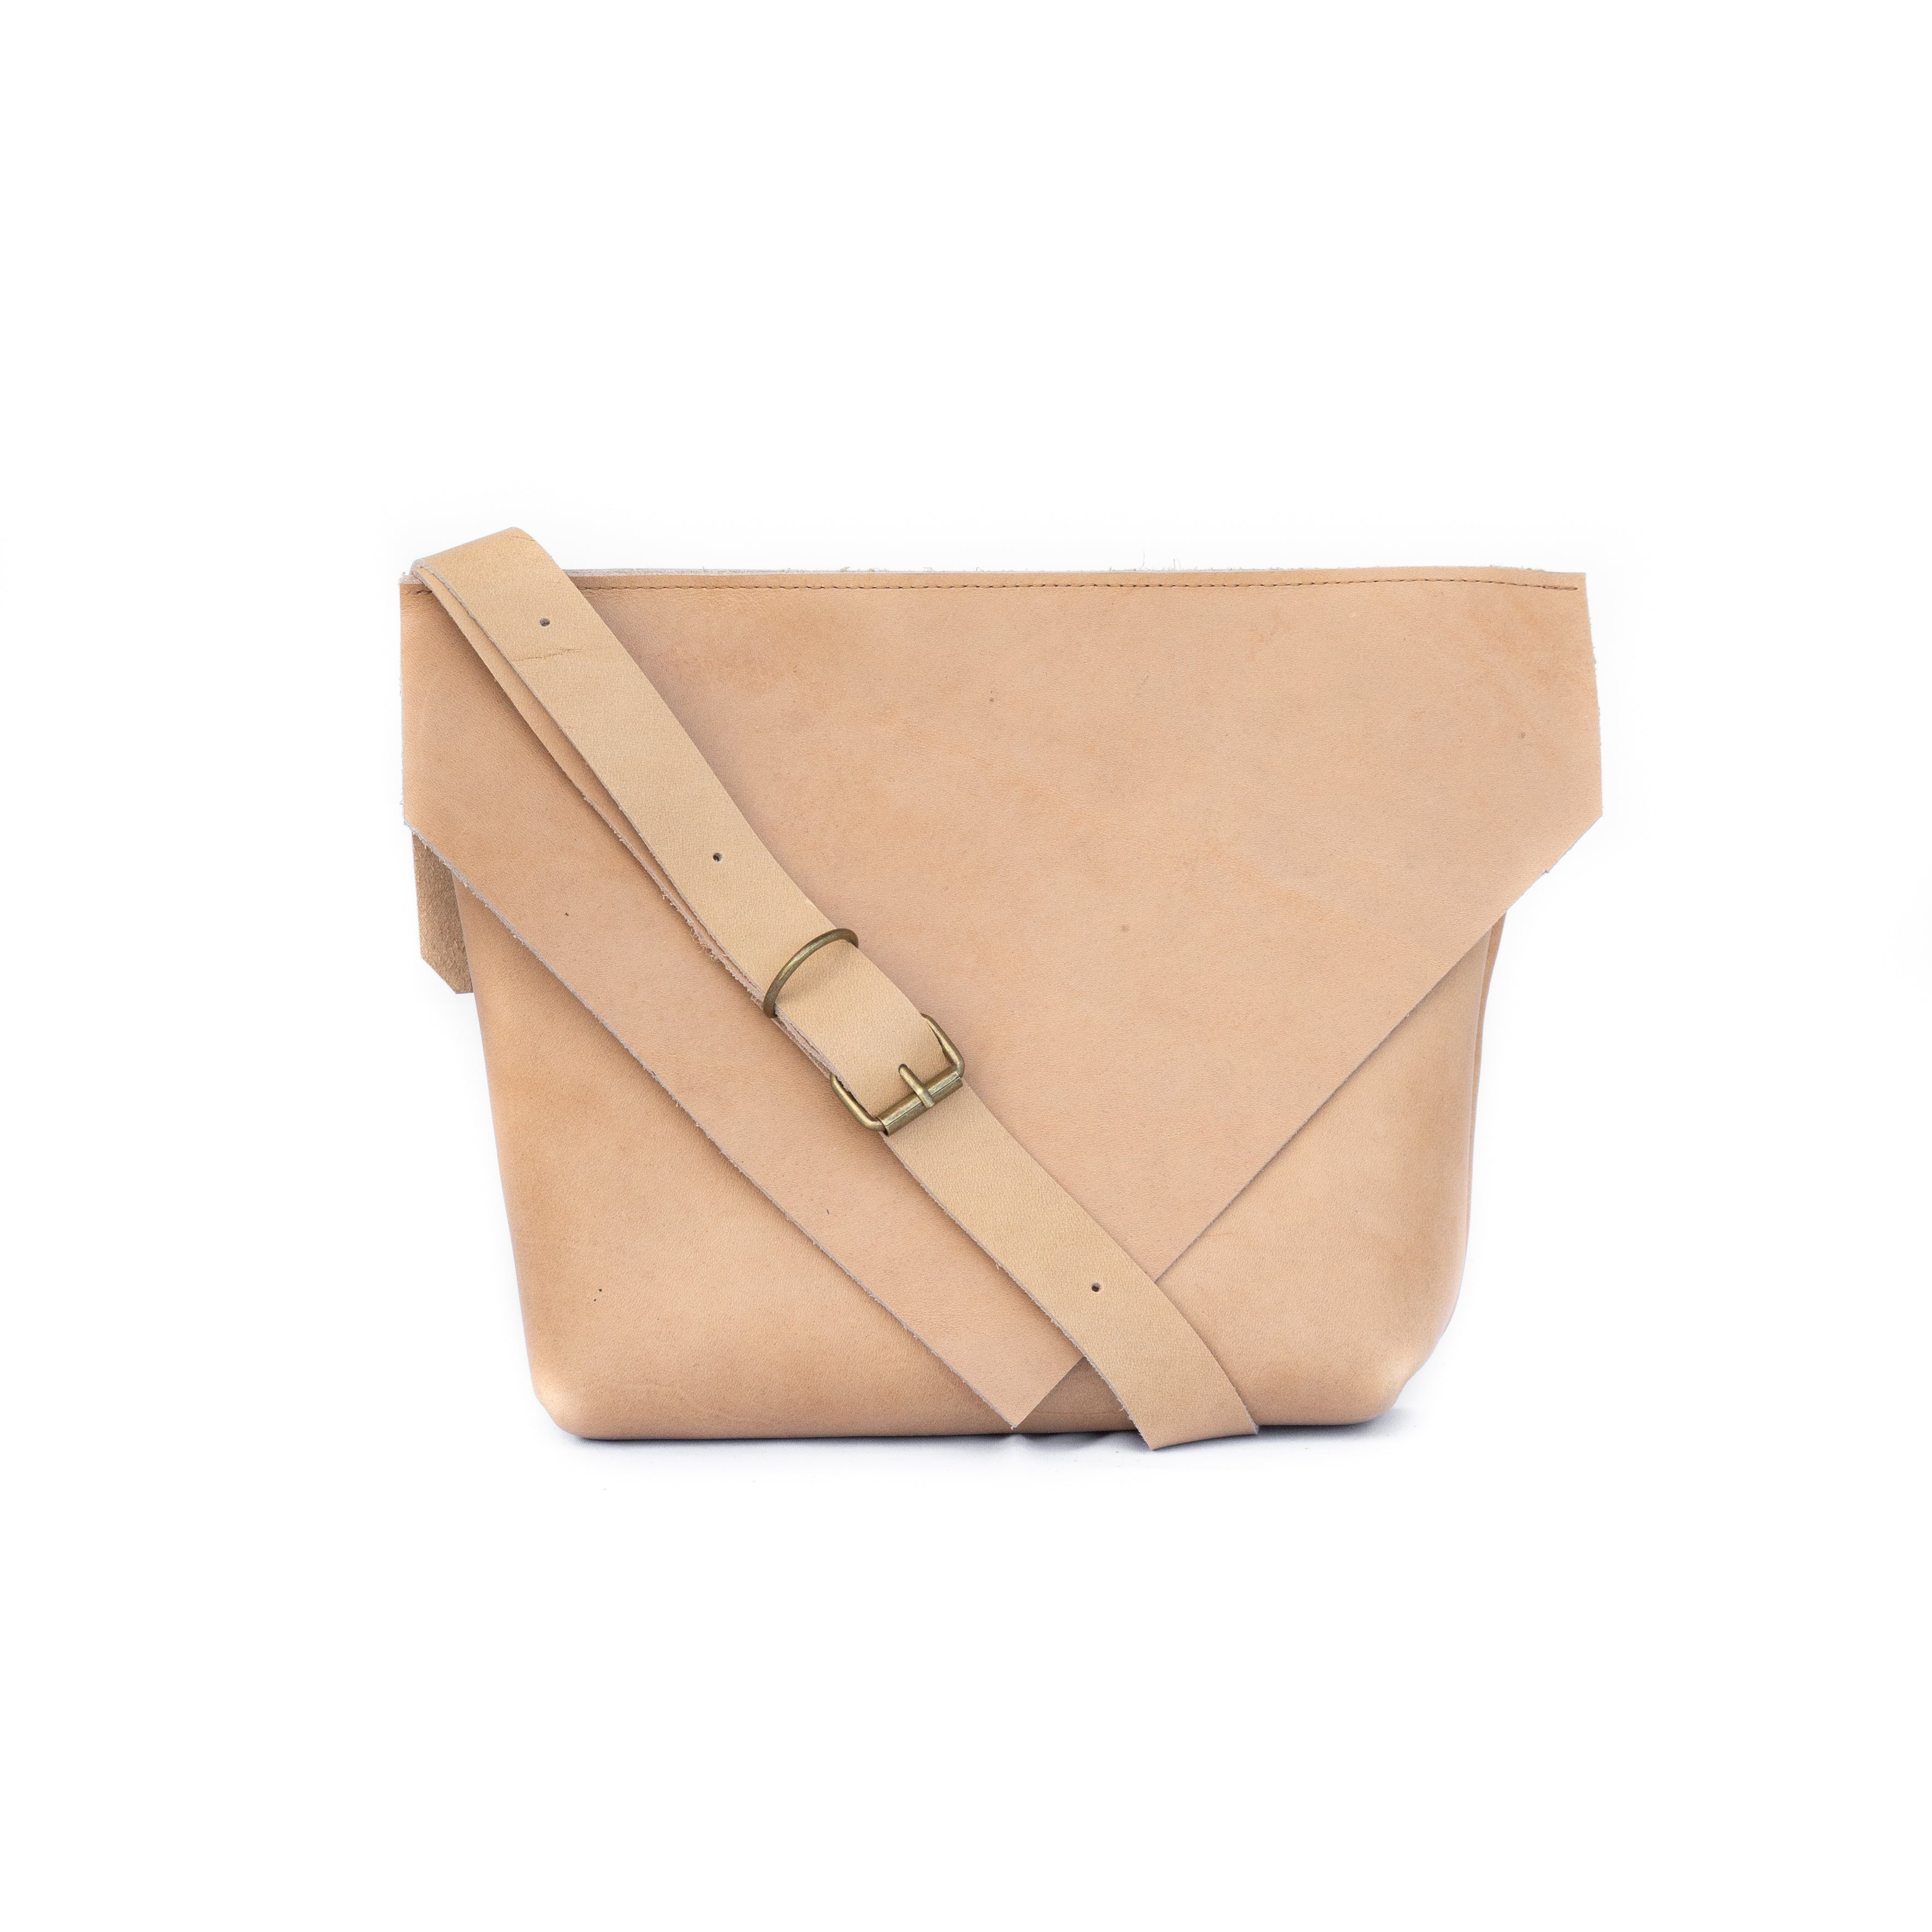 Envelope Bag in Tan Leather - handcrafted by Market Canvas Leather in Tofino, BC, Canada